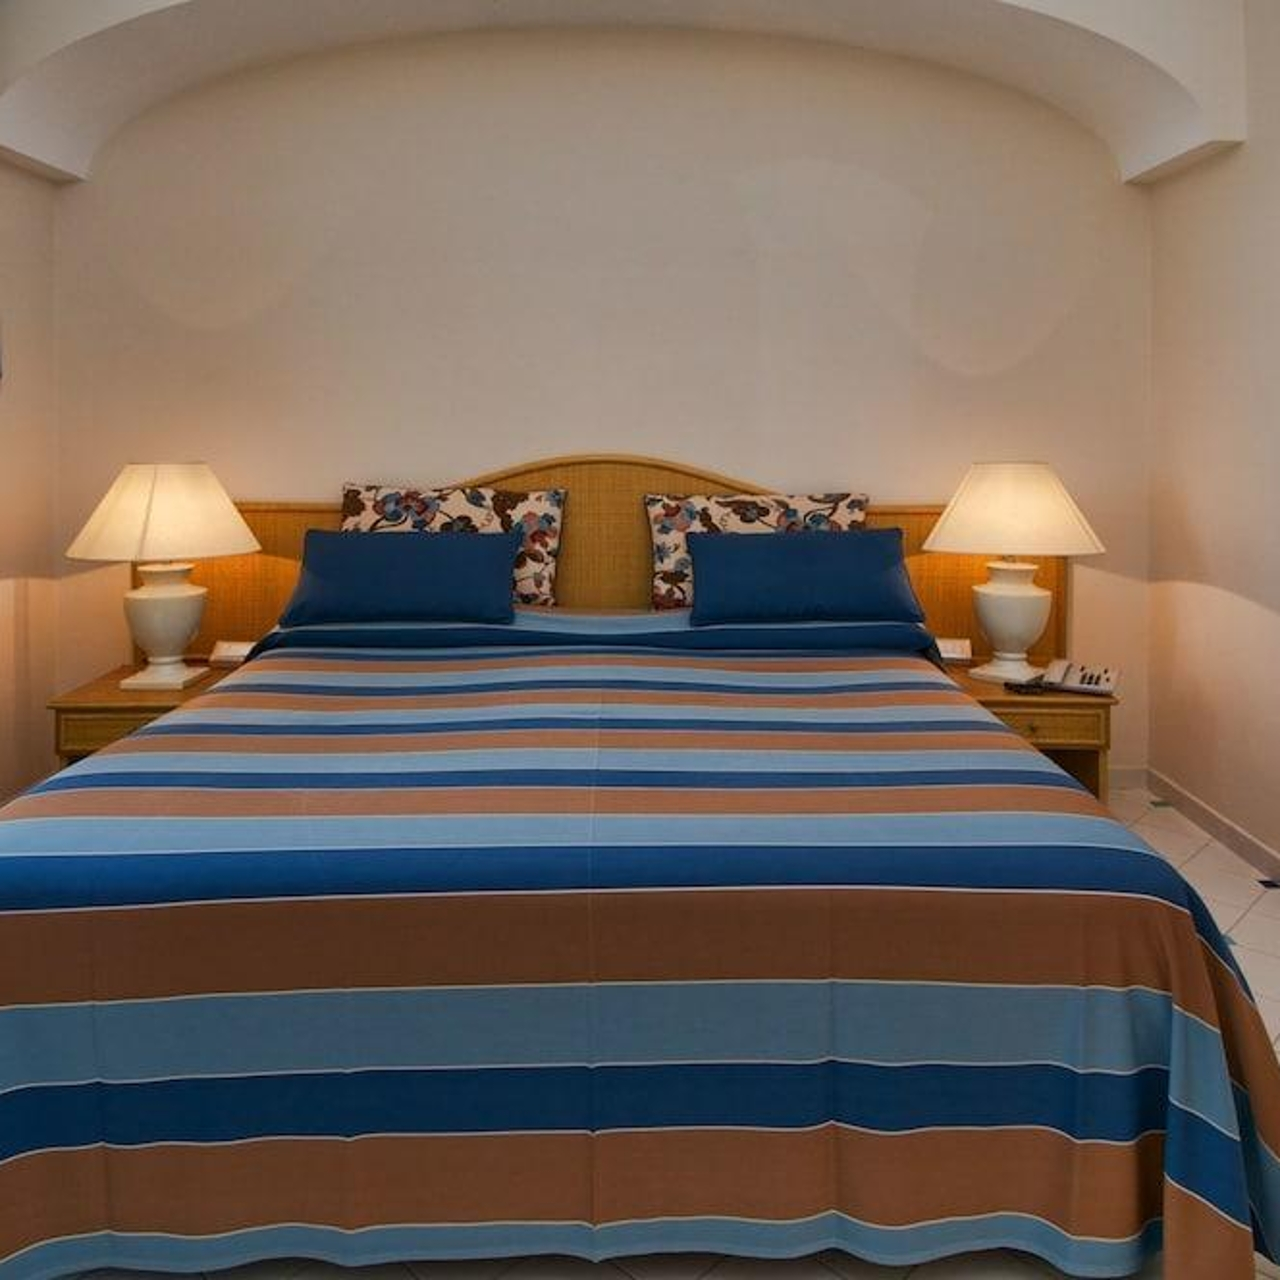 Grand Hotel Aminta Italy At Hrs With Free Services